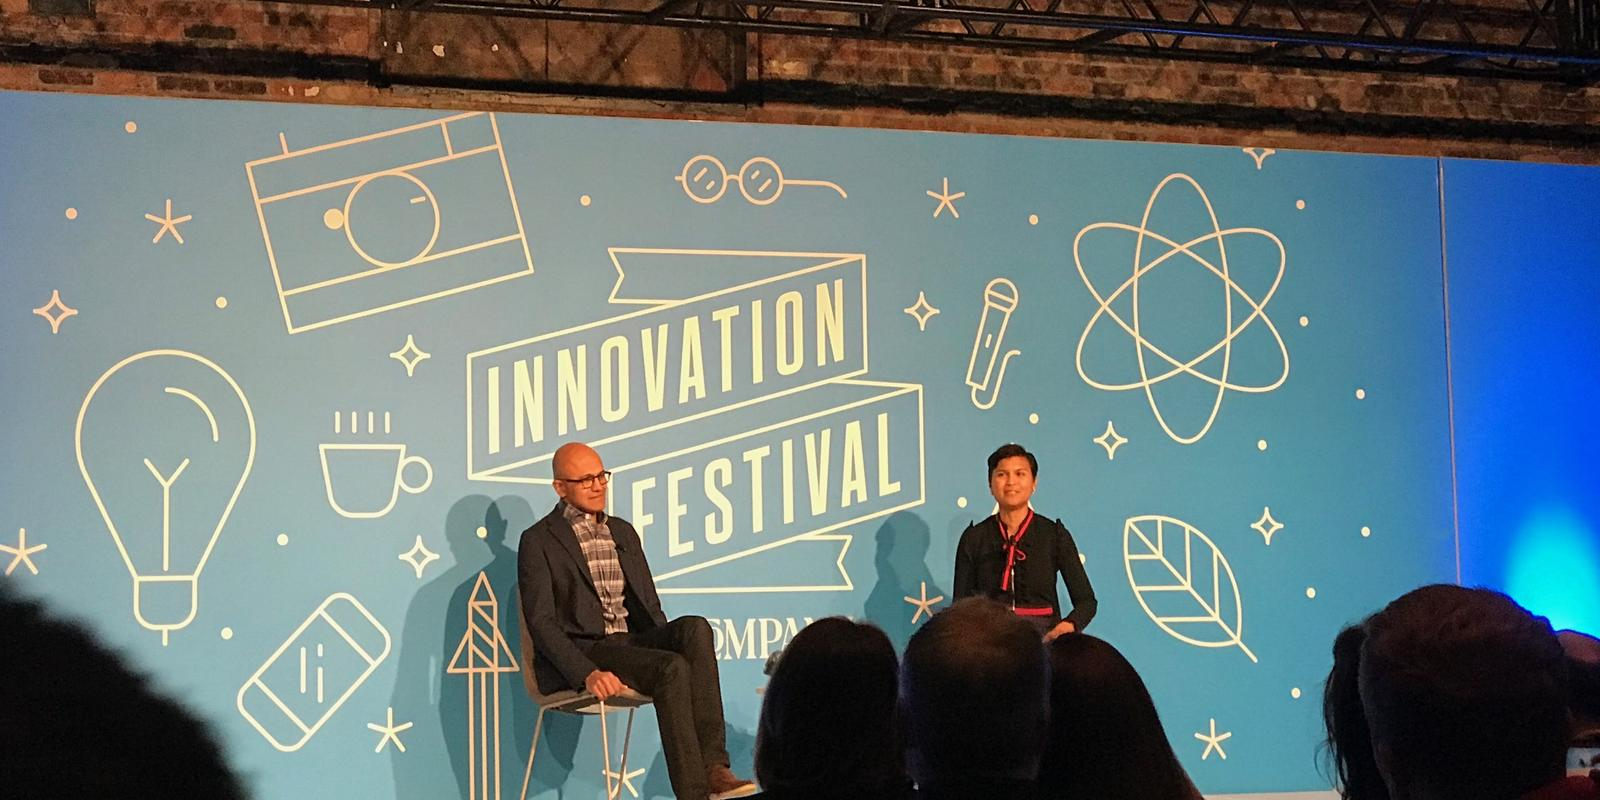 Microsoft CEO, Satya Nadella on a panel about innovation